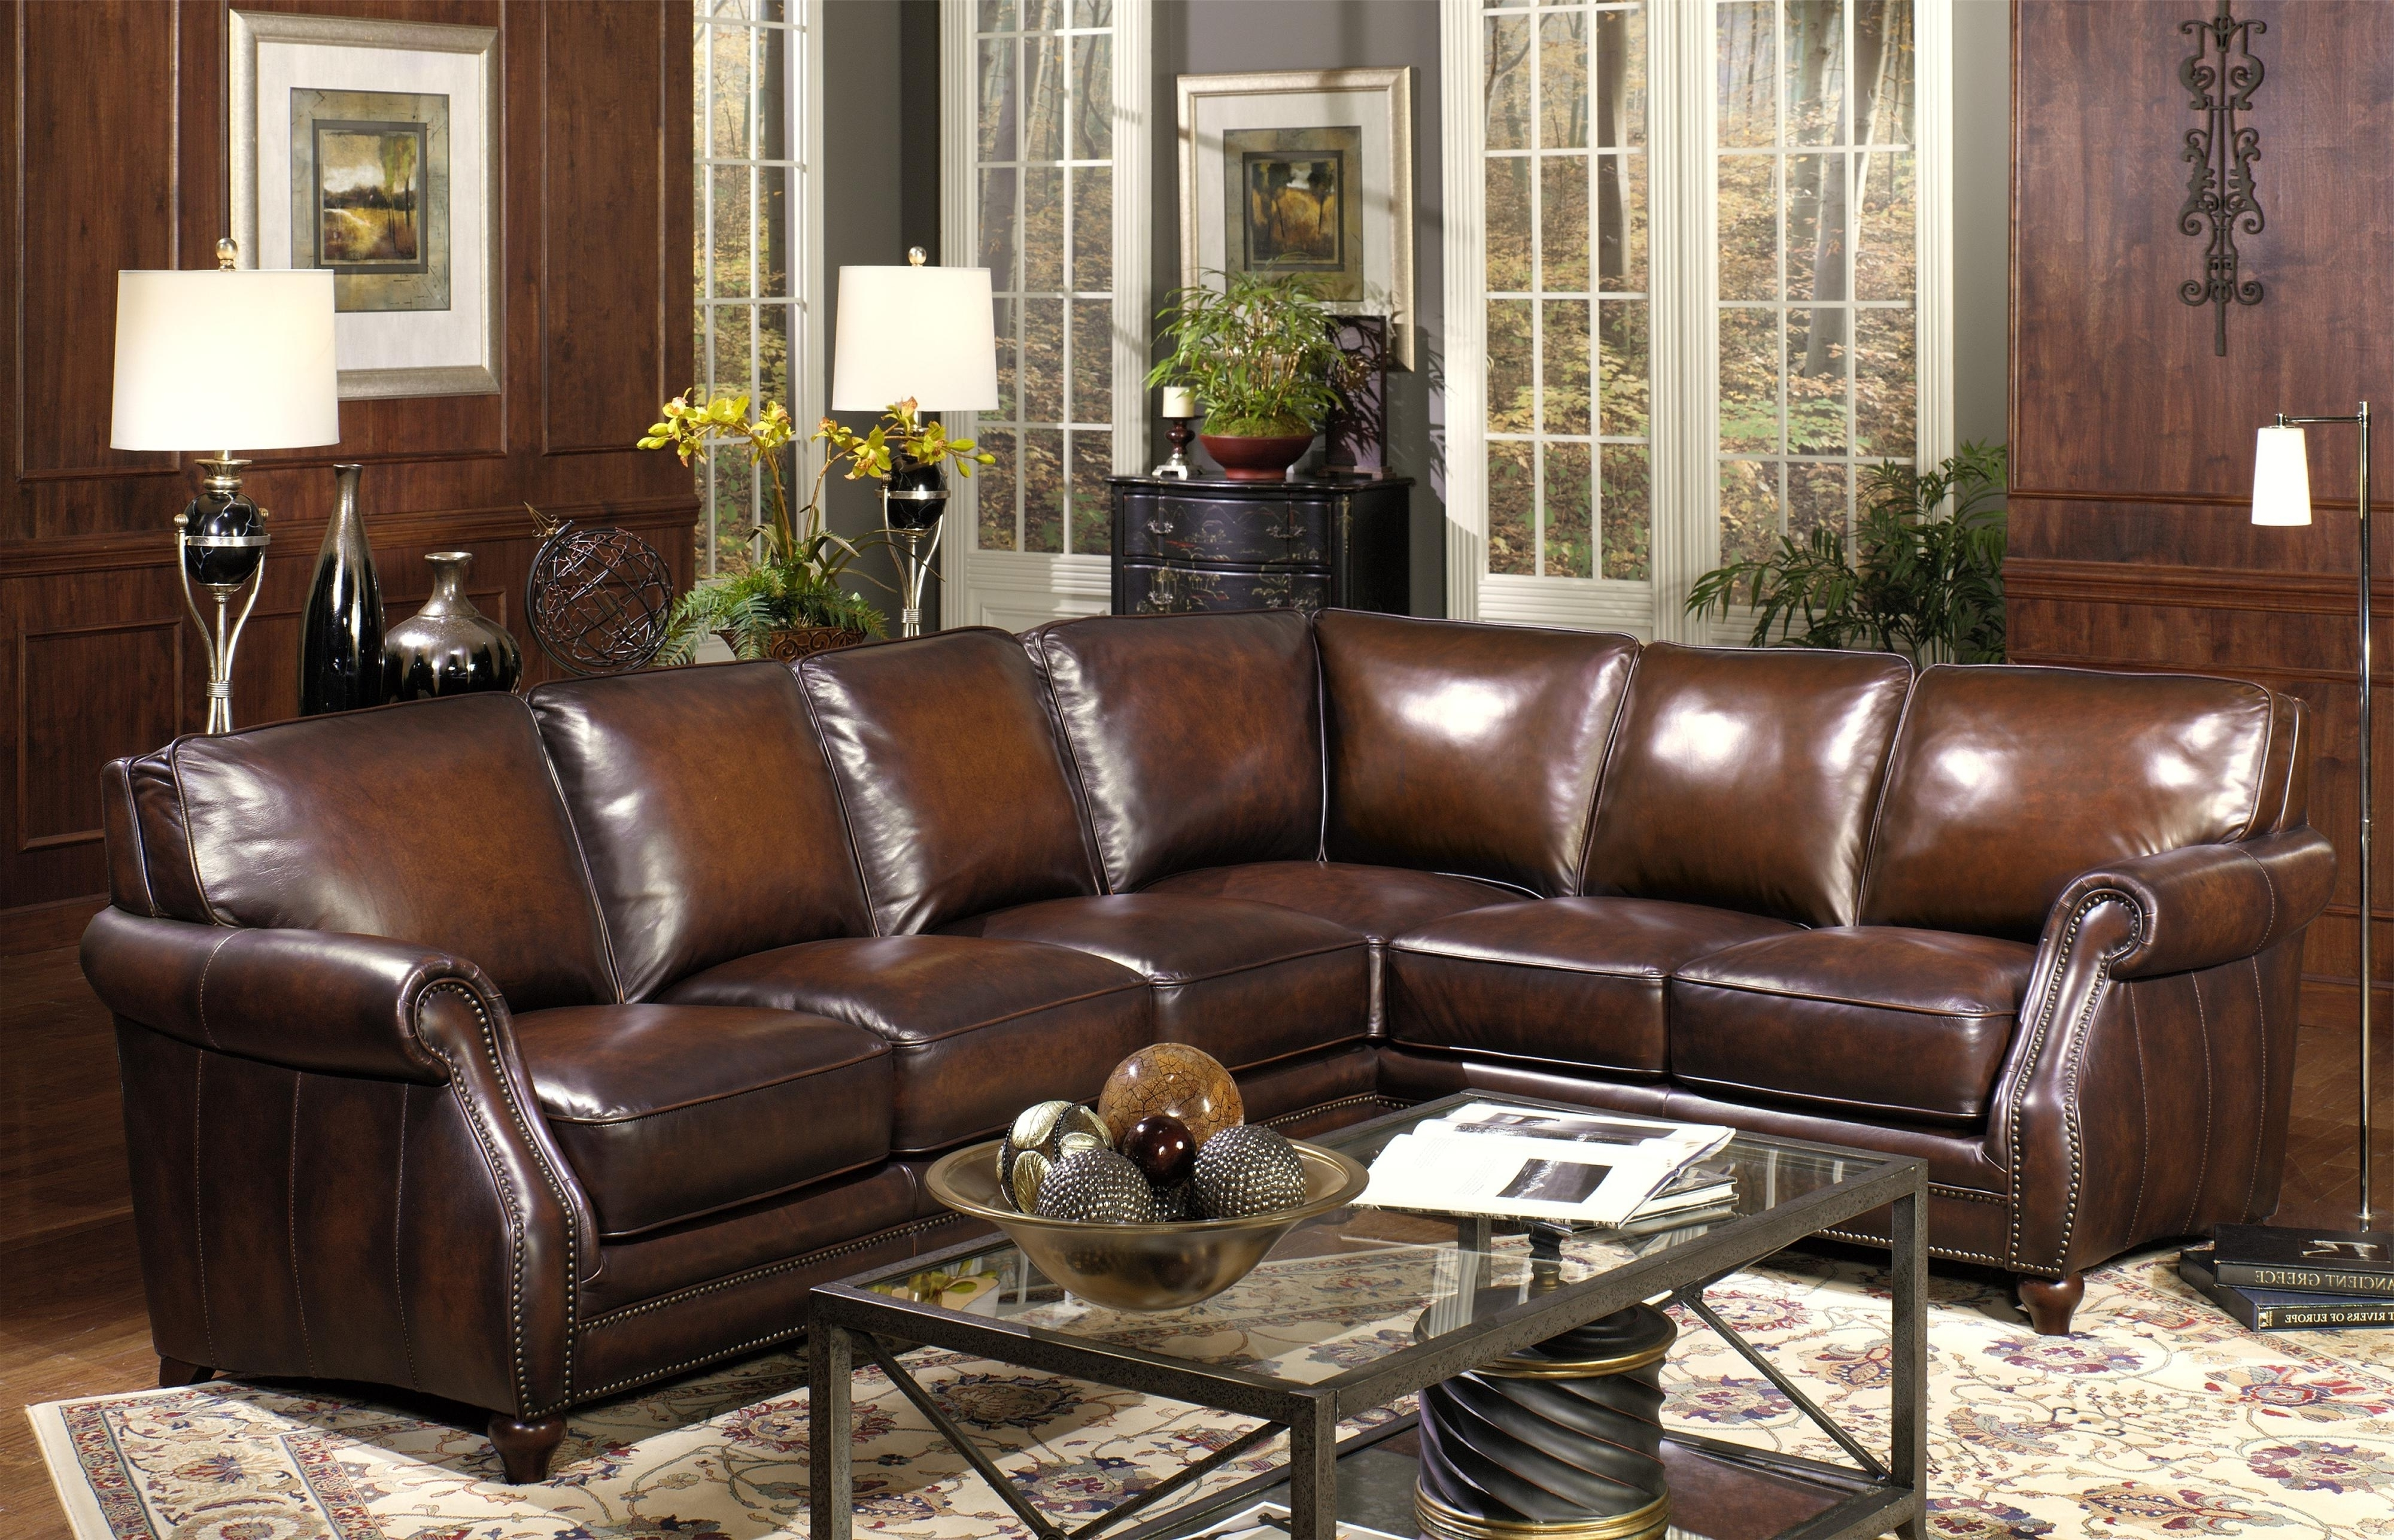 Elegant Sectional Sofas For Most Recent Elegant Leather Sectional Sofas San Diego 35 On Gray Modular In (View 4 of 20)